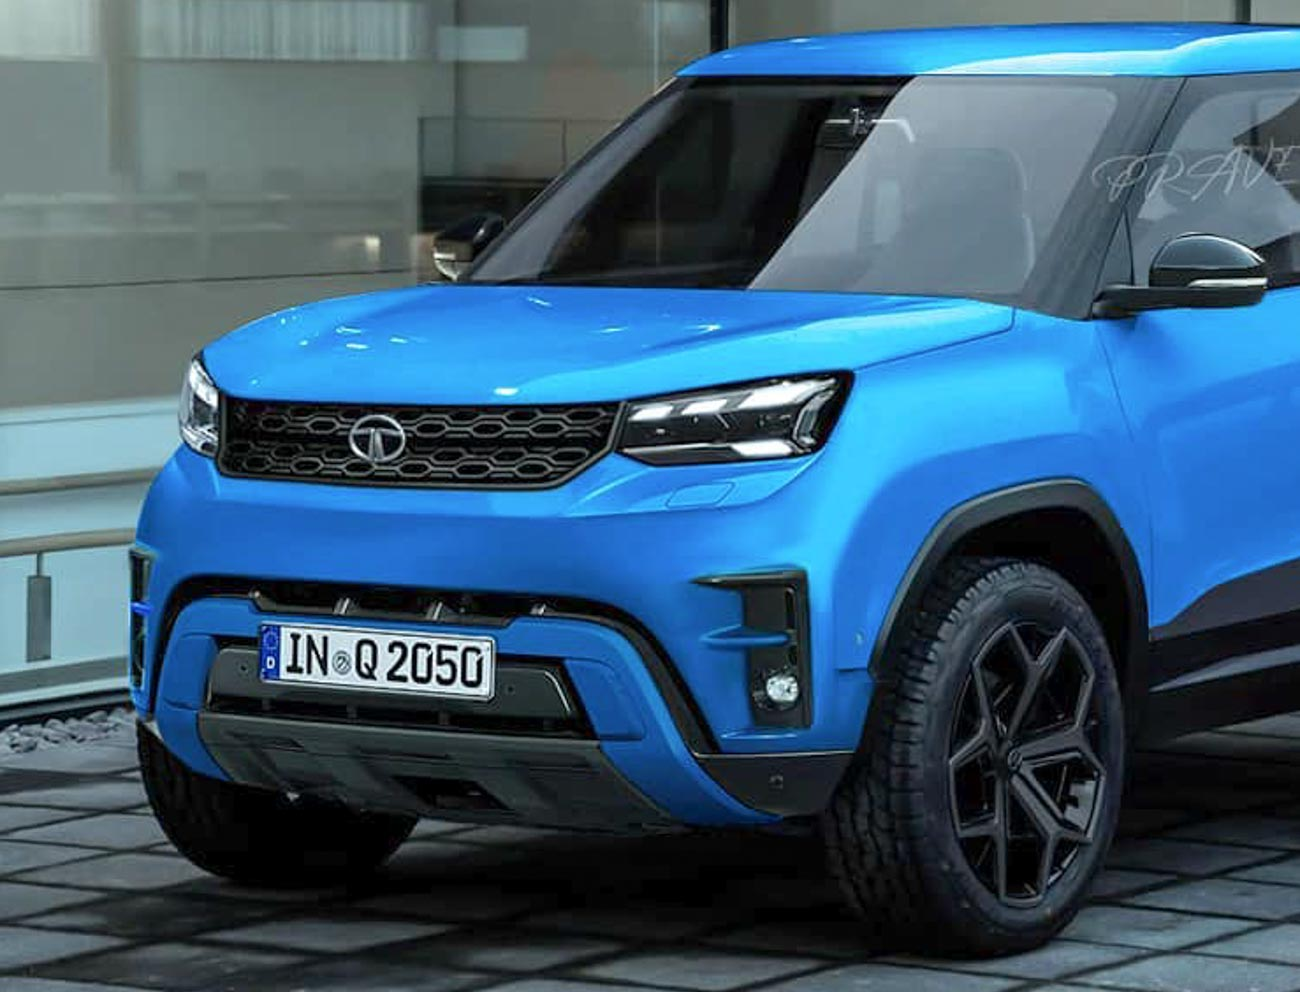 Production Ready Version Tata Sierra Rendered-2